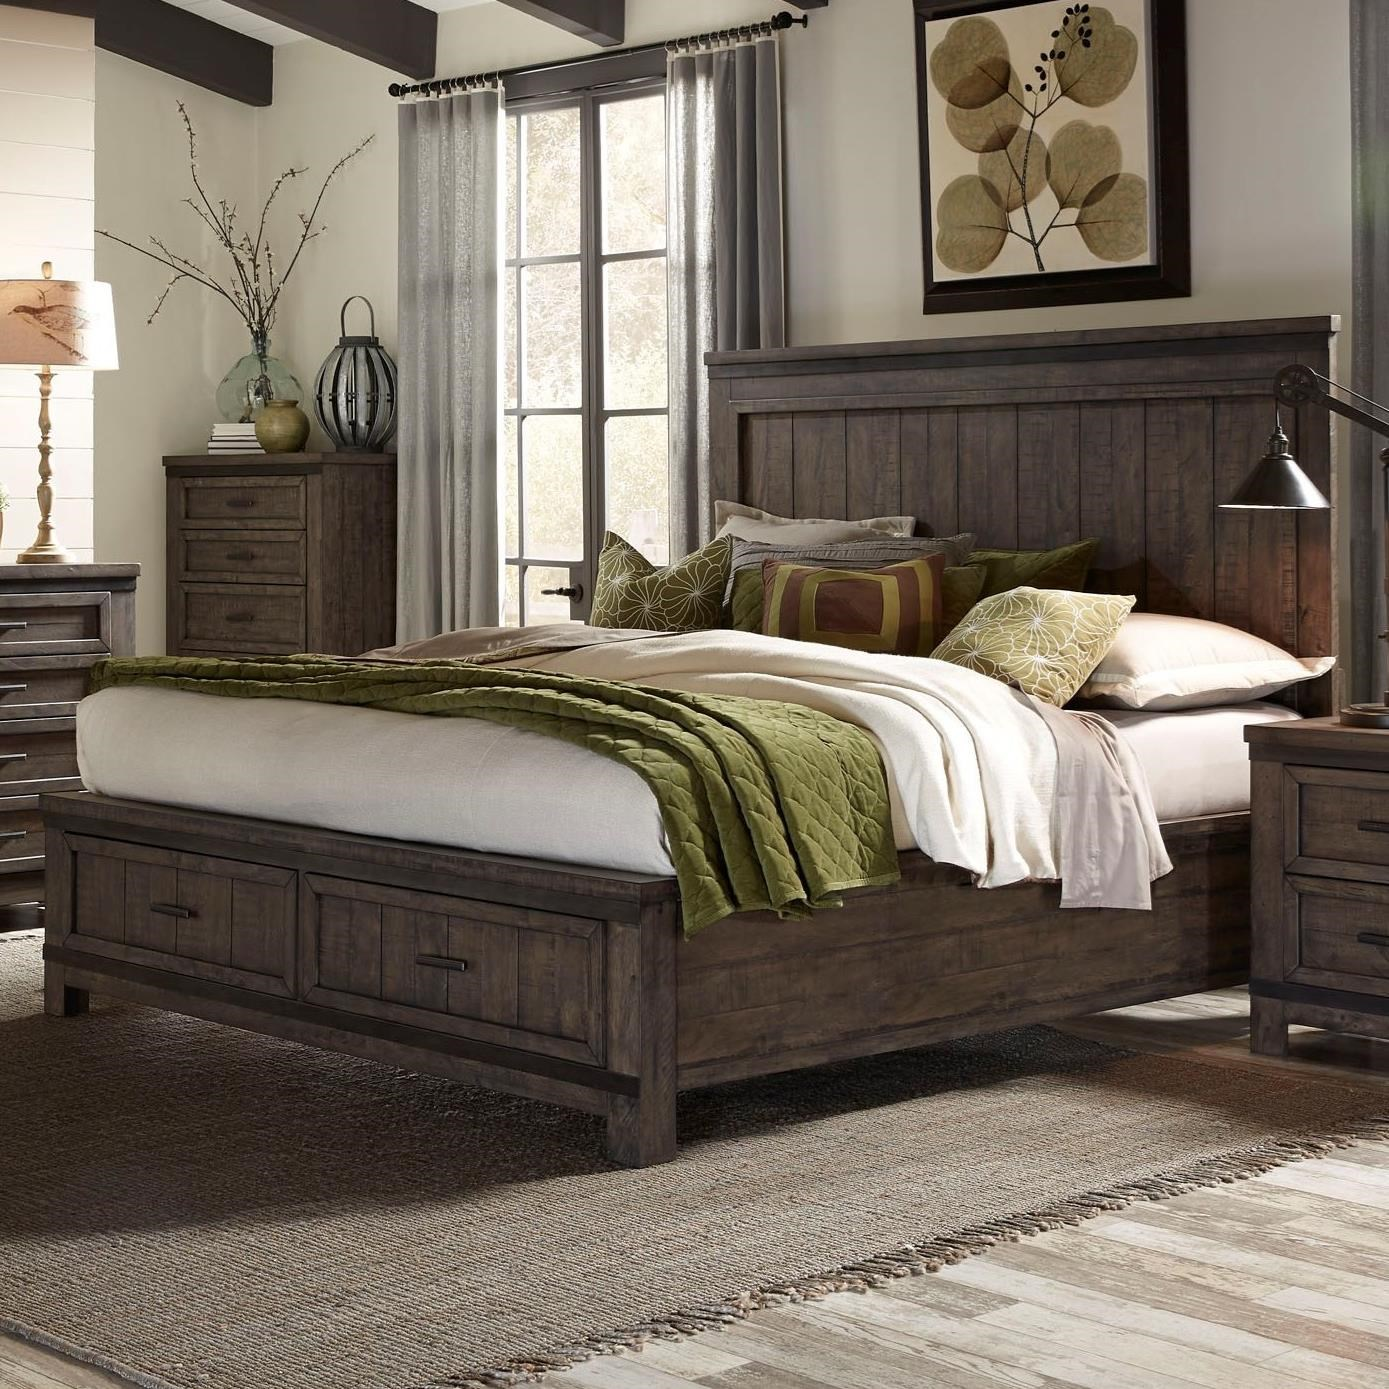 Liberty furniture thornwood hills queen storage bed with two dovetail drawers wayside for Queen bedroom furniture sets with storage